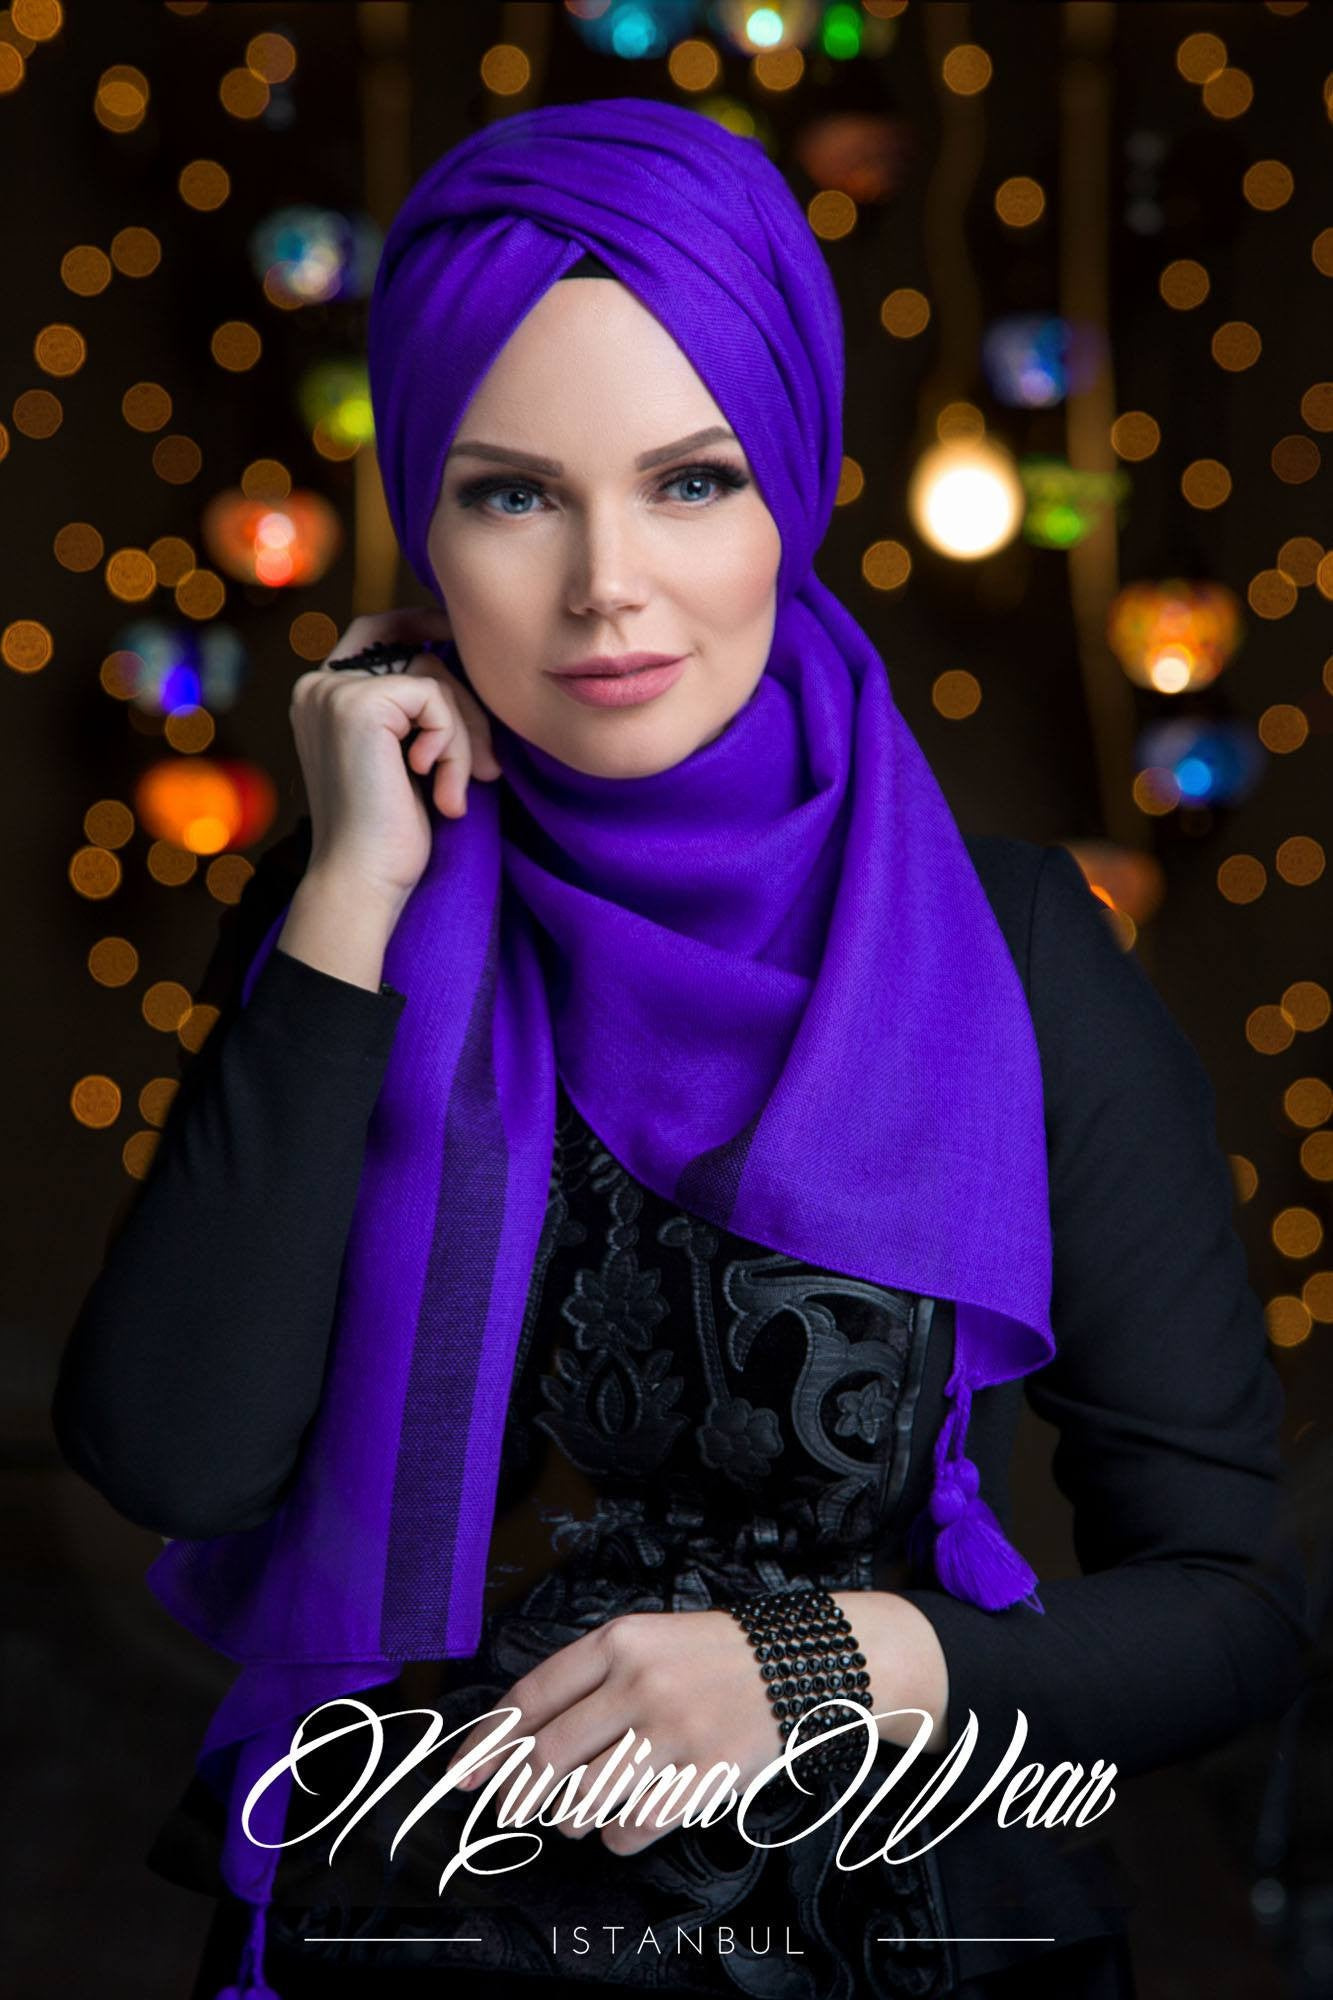 Queen Hijab Violette - Muslima Wear 3